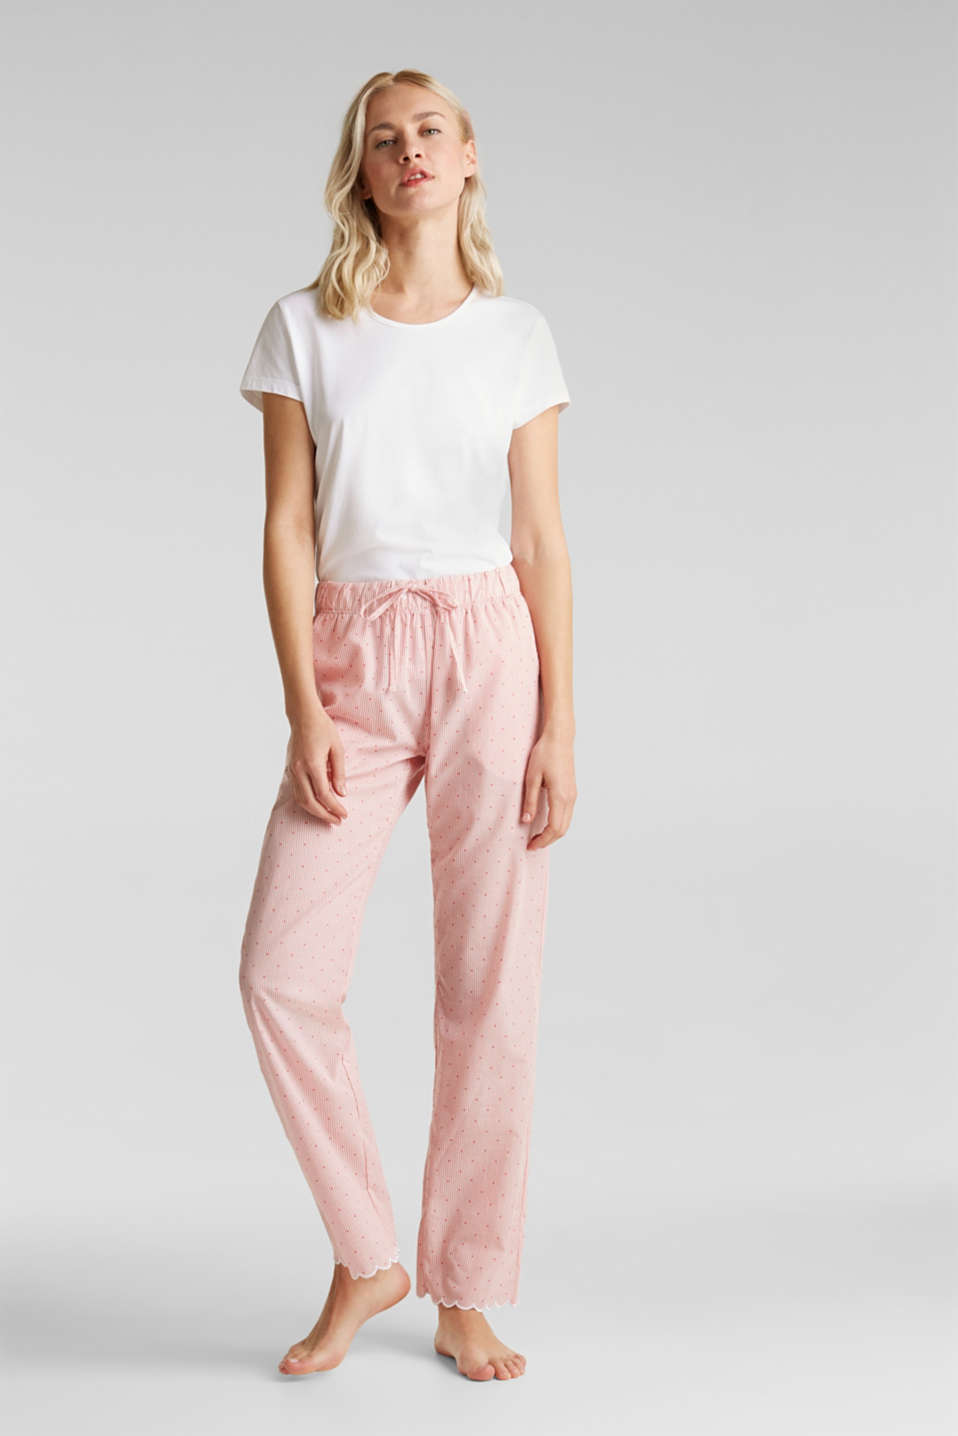 Esprit - Woven fabric pyjama bottoms, 100% cotton